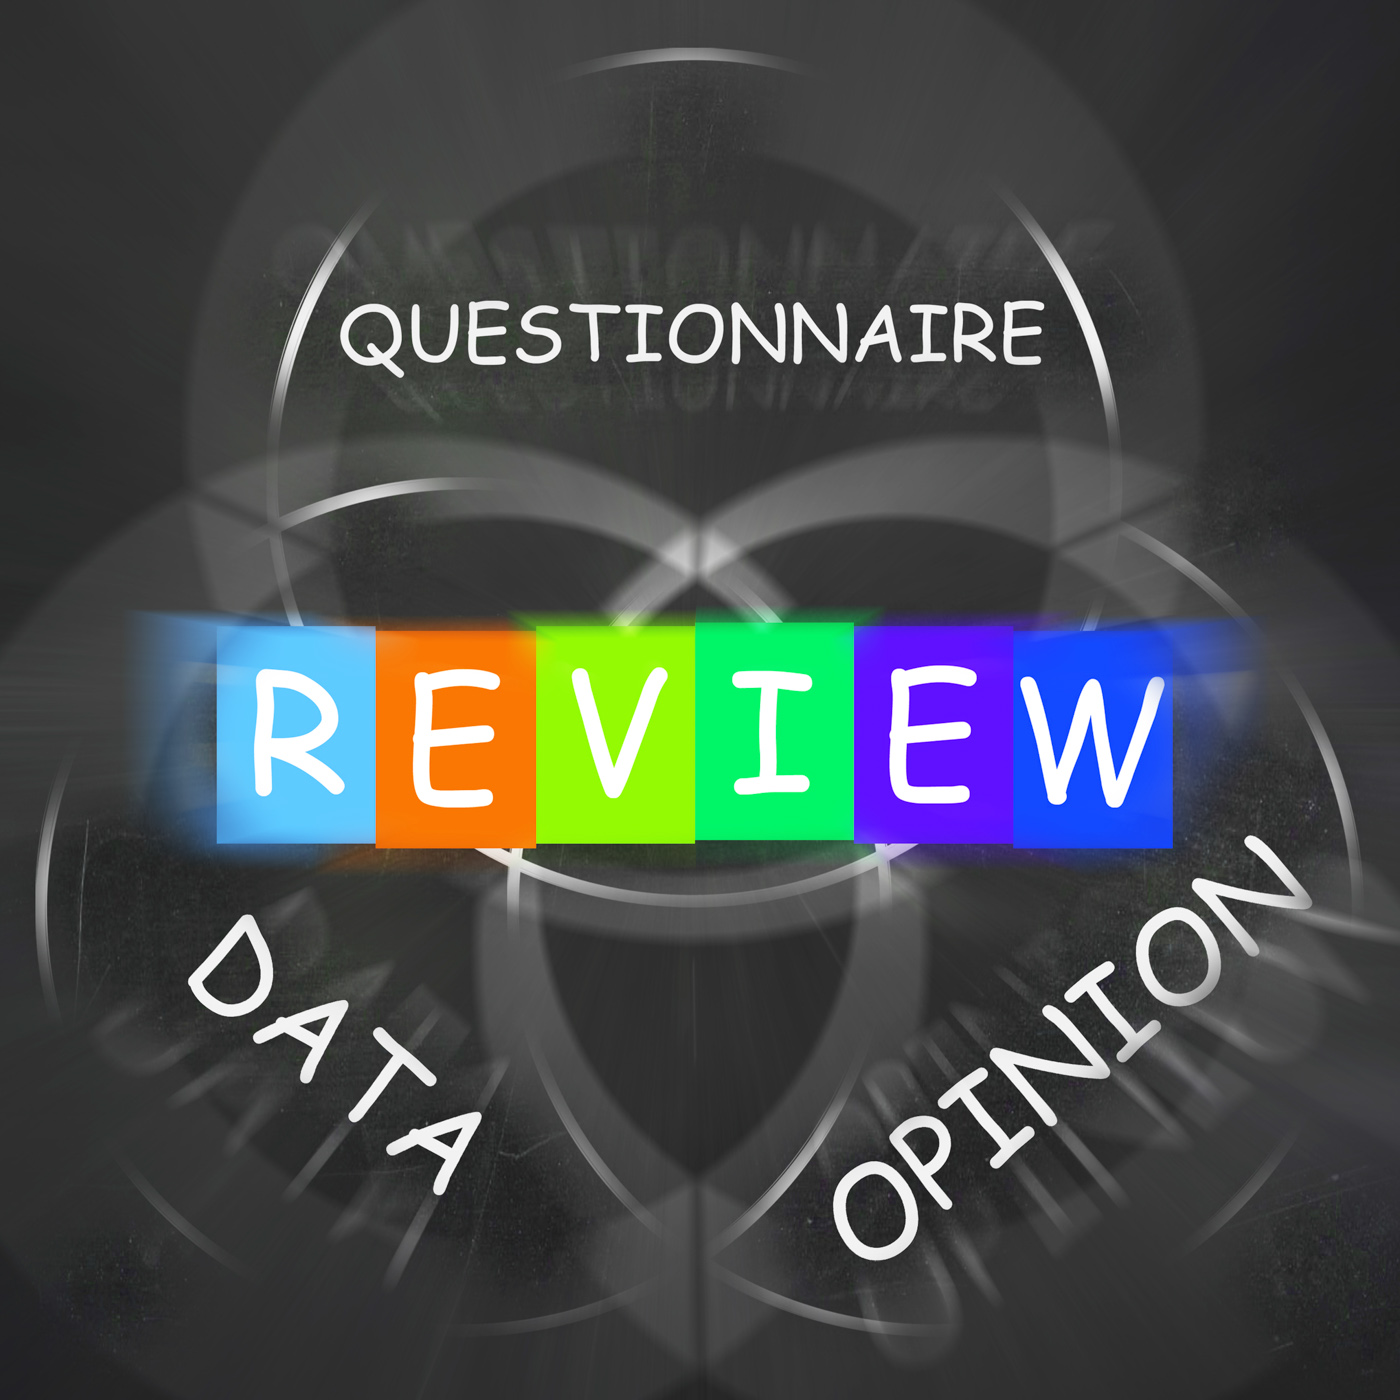 Questionnaire of Reviewed Data and Opinion Displays Feedback, Appraisal, Reviewing, Review, Questionnaire, HQ Photo